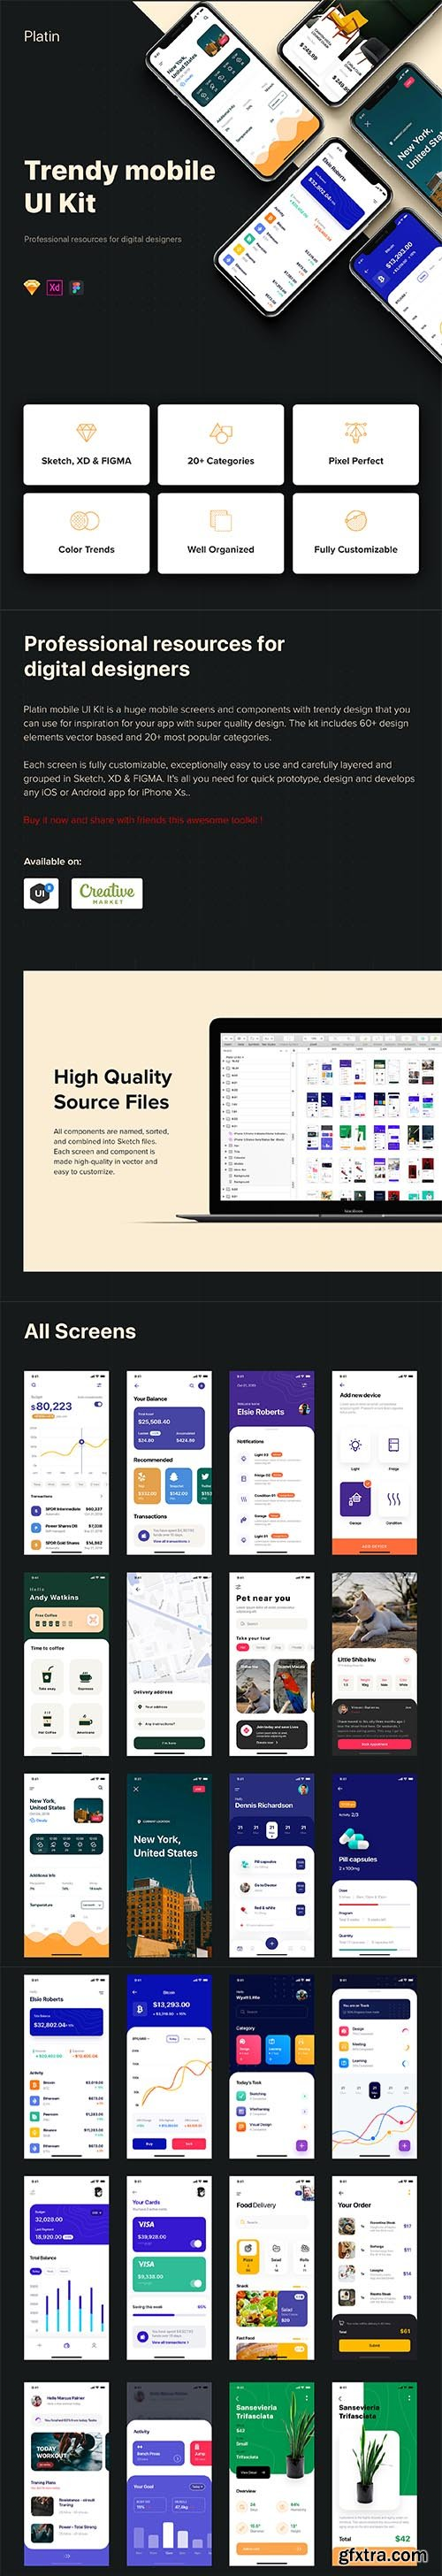 Platin mobile UI Kit